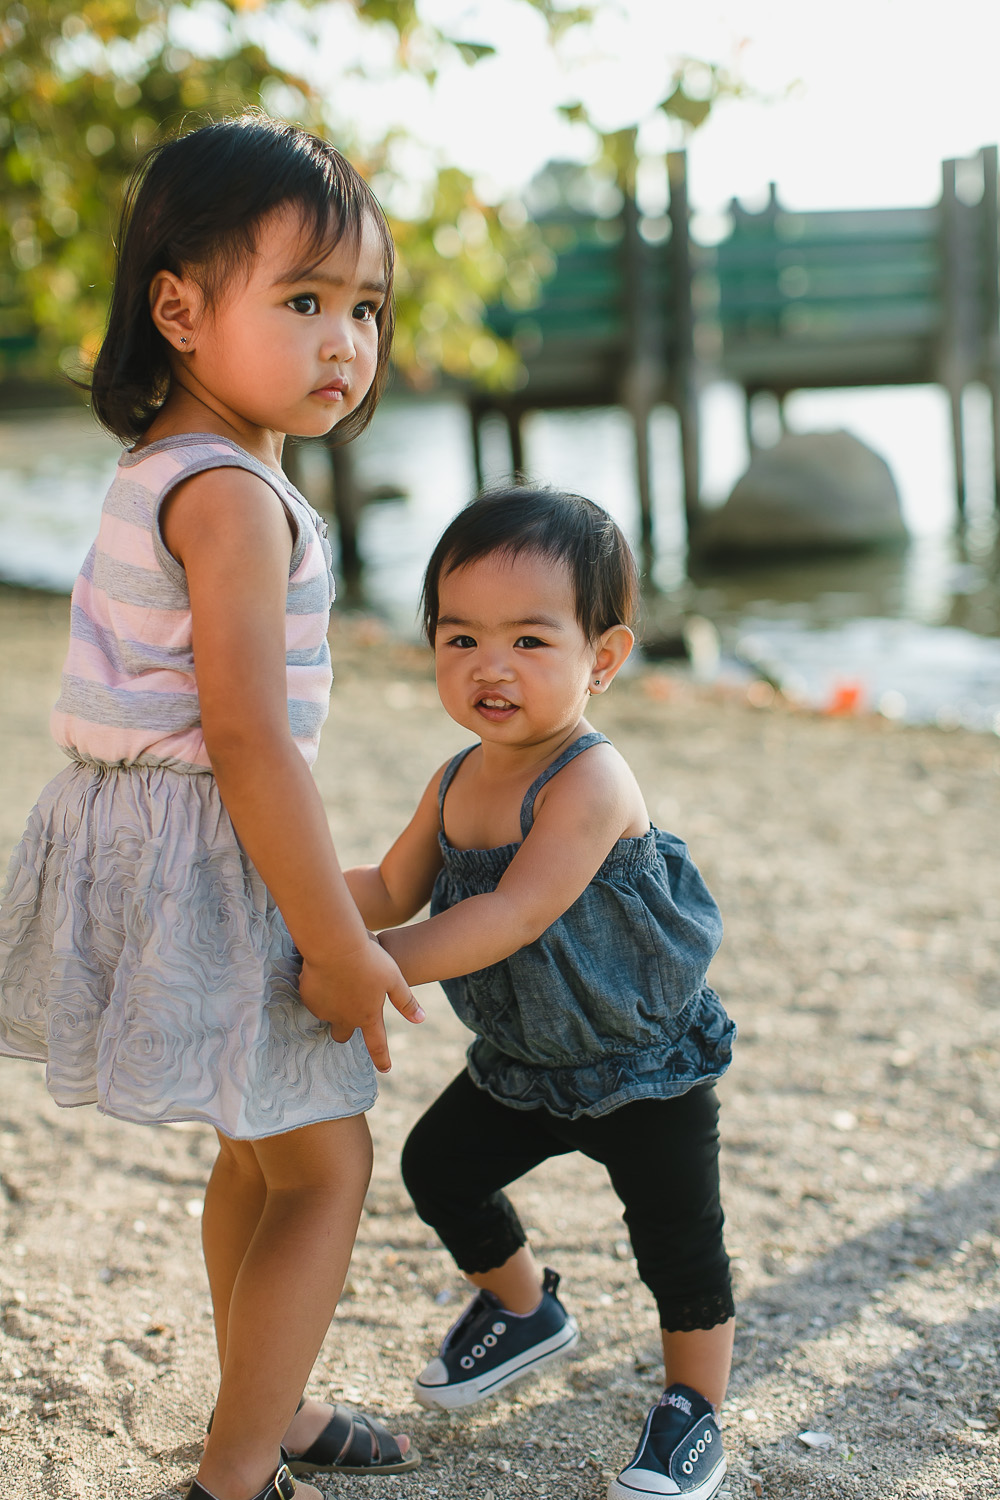 San Dimas Family Photos, Los Angeles Childrens photographer, Gina Holt Photography, Adorable Kids, One Year Old Photos, Grow with Me Program